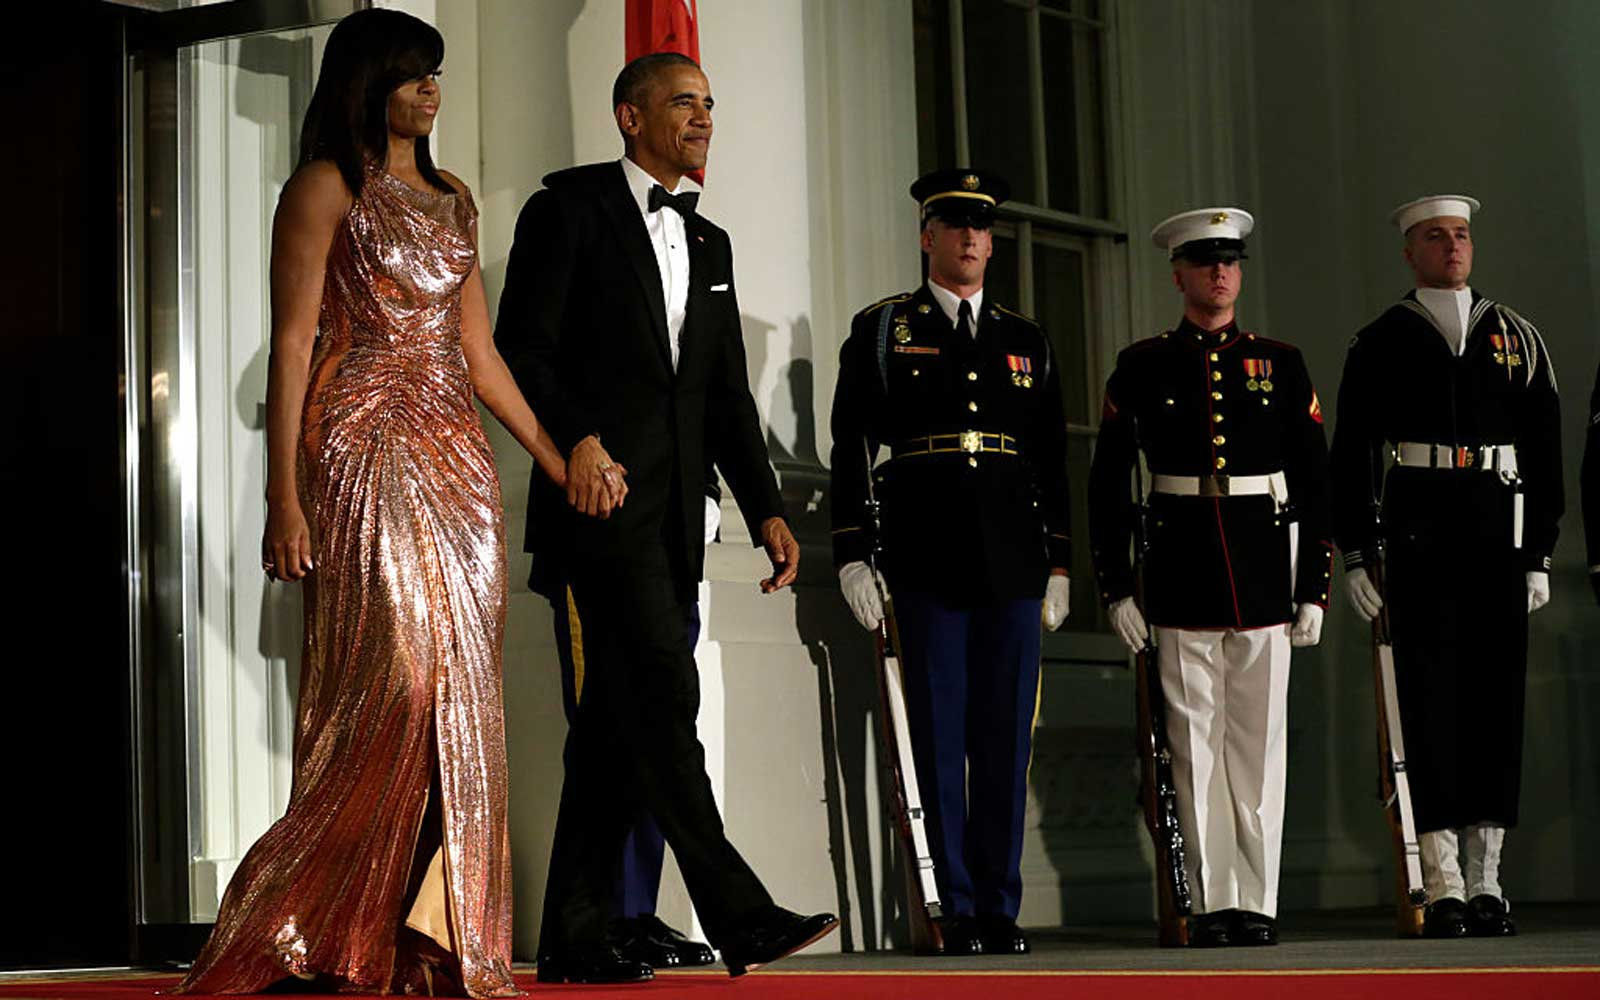 US President Barack Obama and First Lady Michelle Obama walk out to welcome Italian Prime Minister Matteo Renzi and his wife Agnese Landini on the North Portico of the White House before the state dinner in Washington